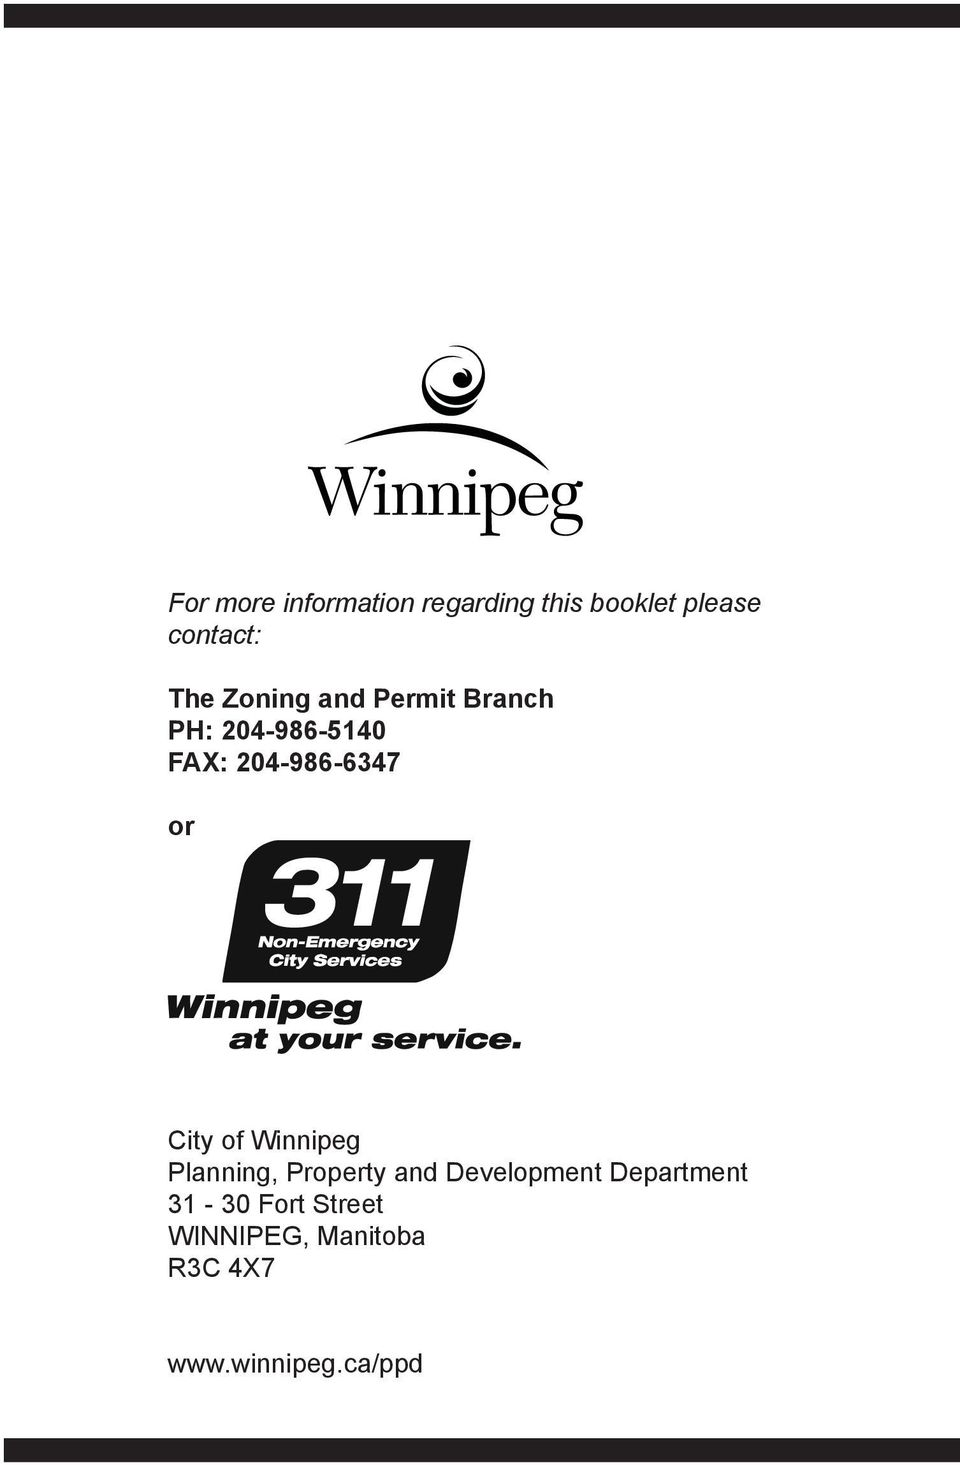 City of Winnipeg Planning, Property and Development Department